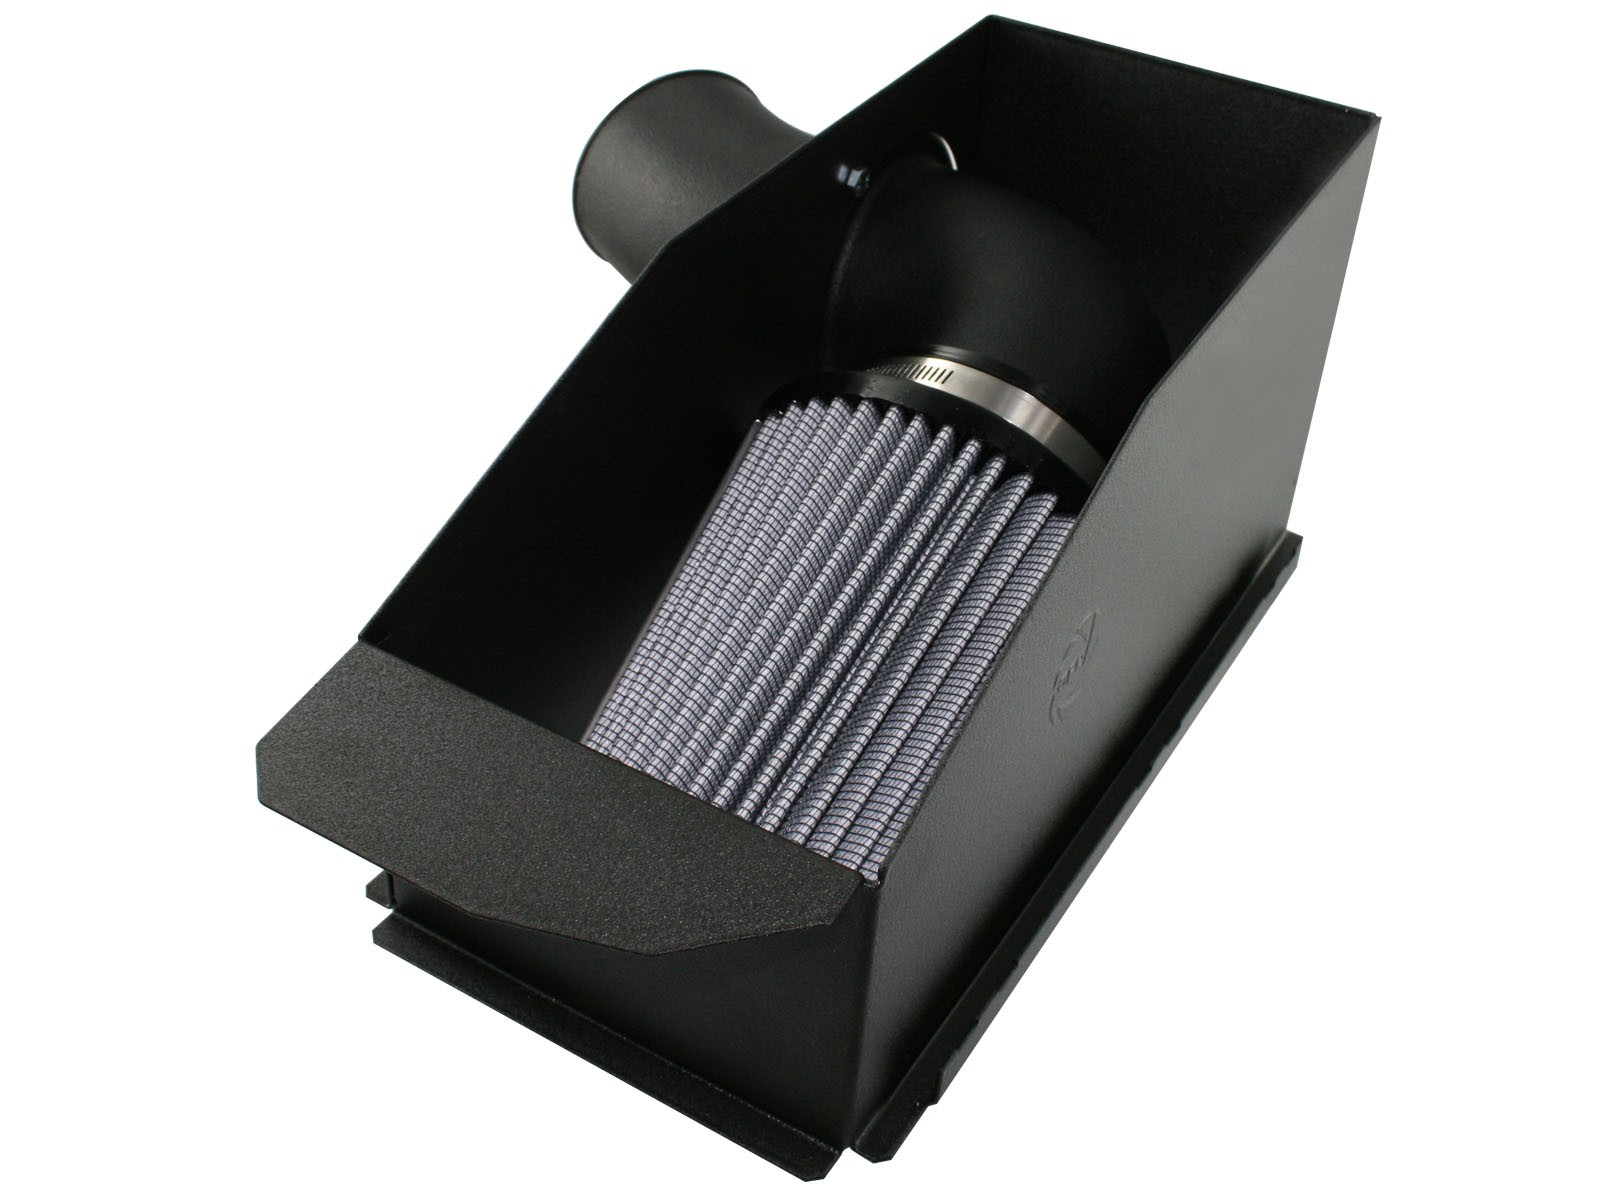 aFe POWER 51-10301 Magnum FORCE Stage-1 Pro DRY S Cold Air Intake System